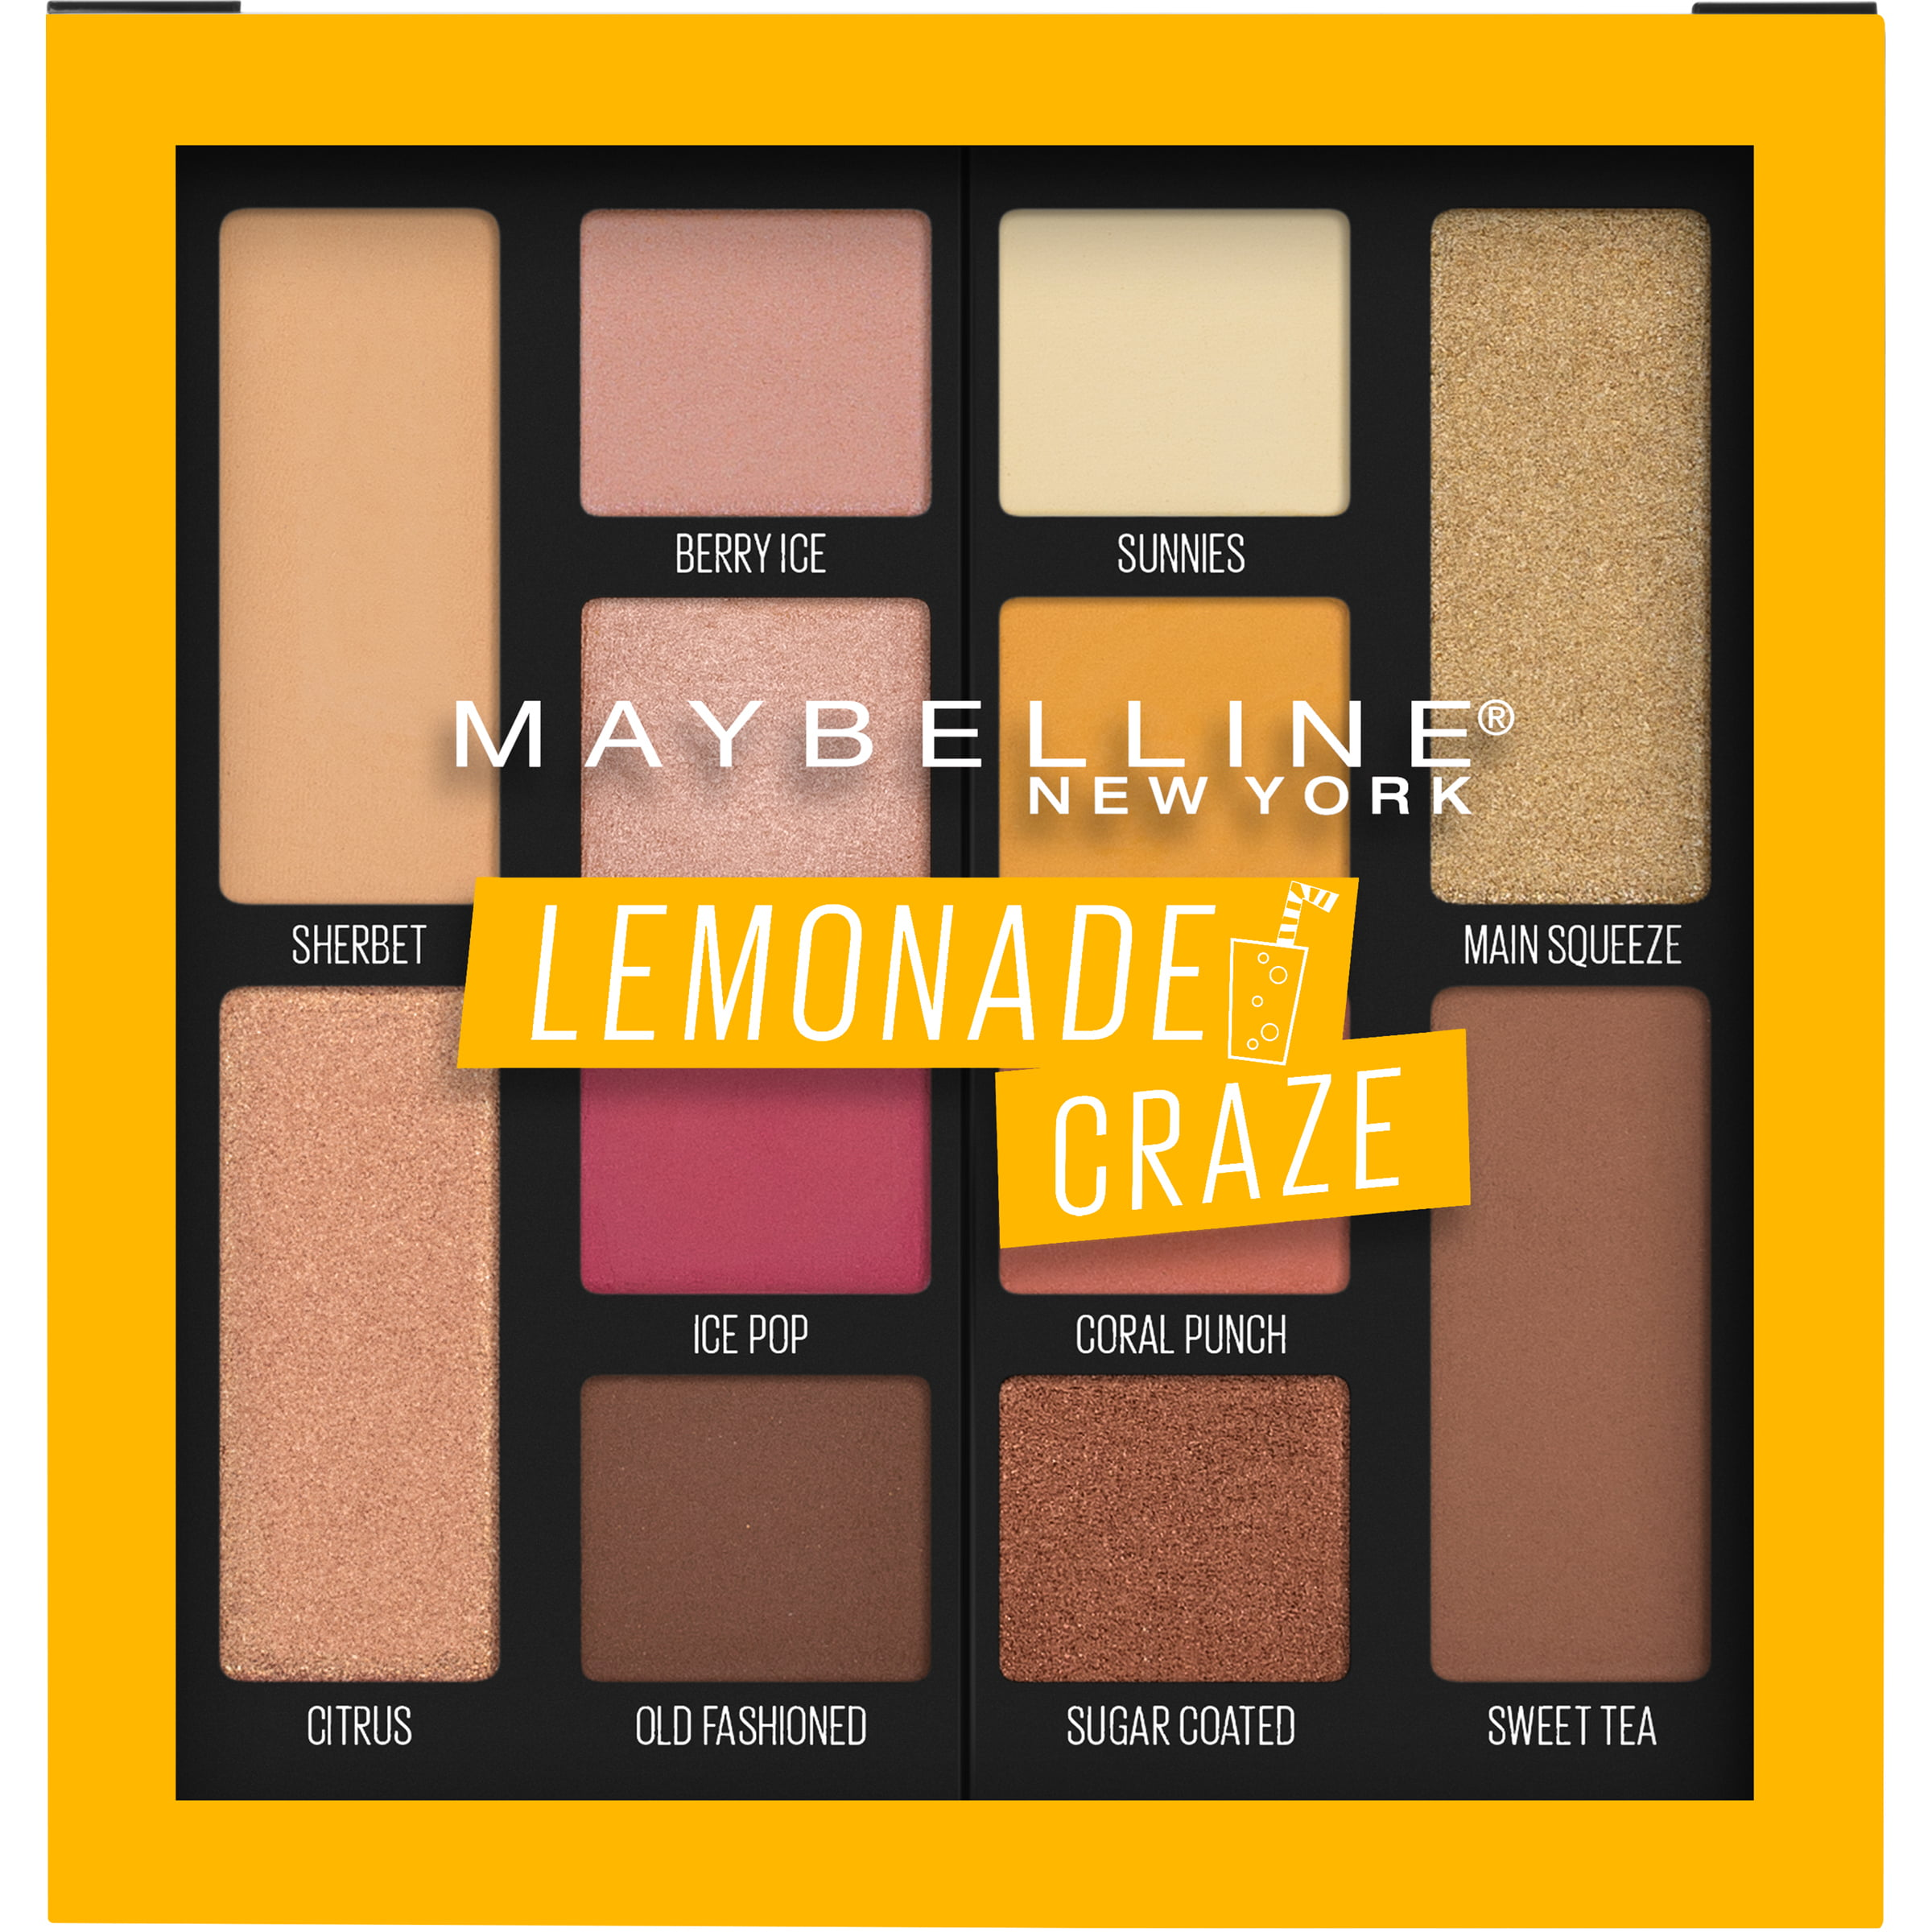 Maybelline Lemonade Craze Eyeshadow Palette Makeup, Lemonade Craze, 0.26 oz.